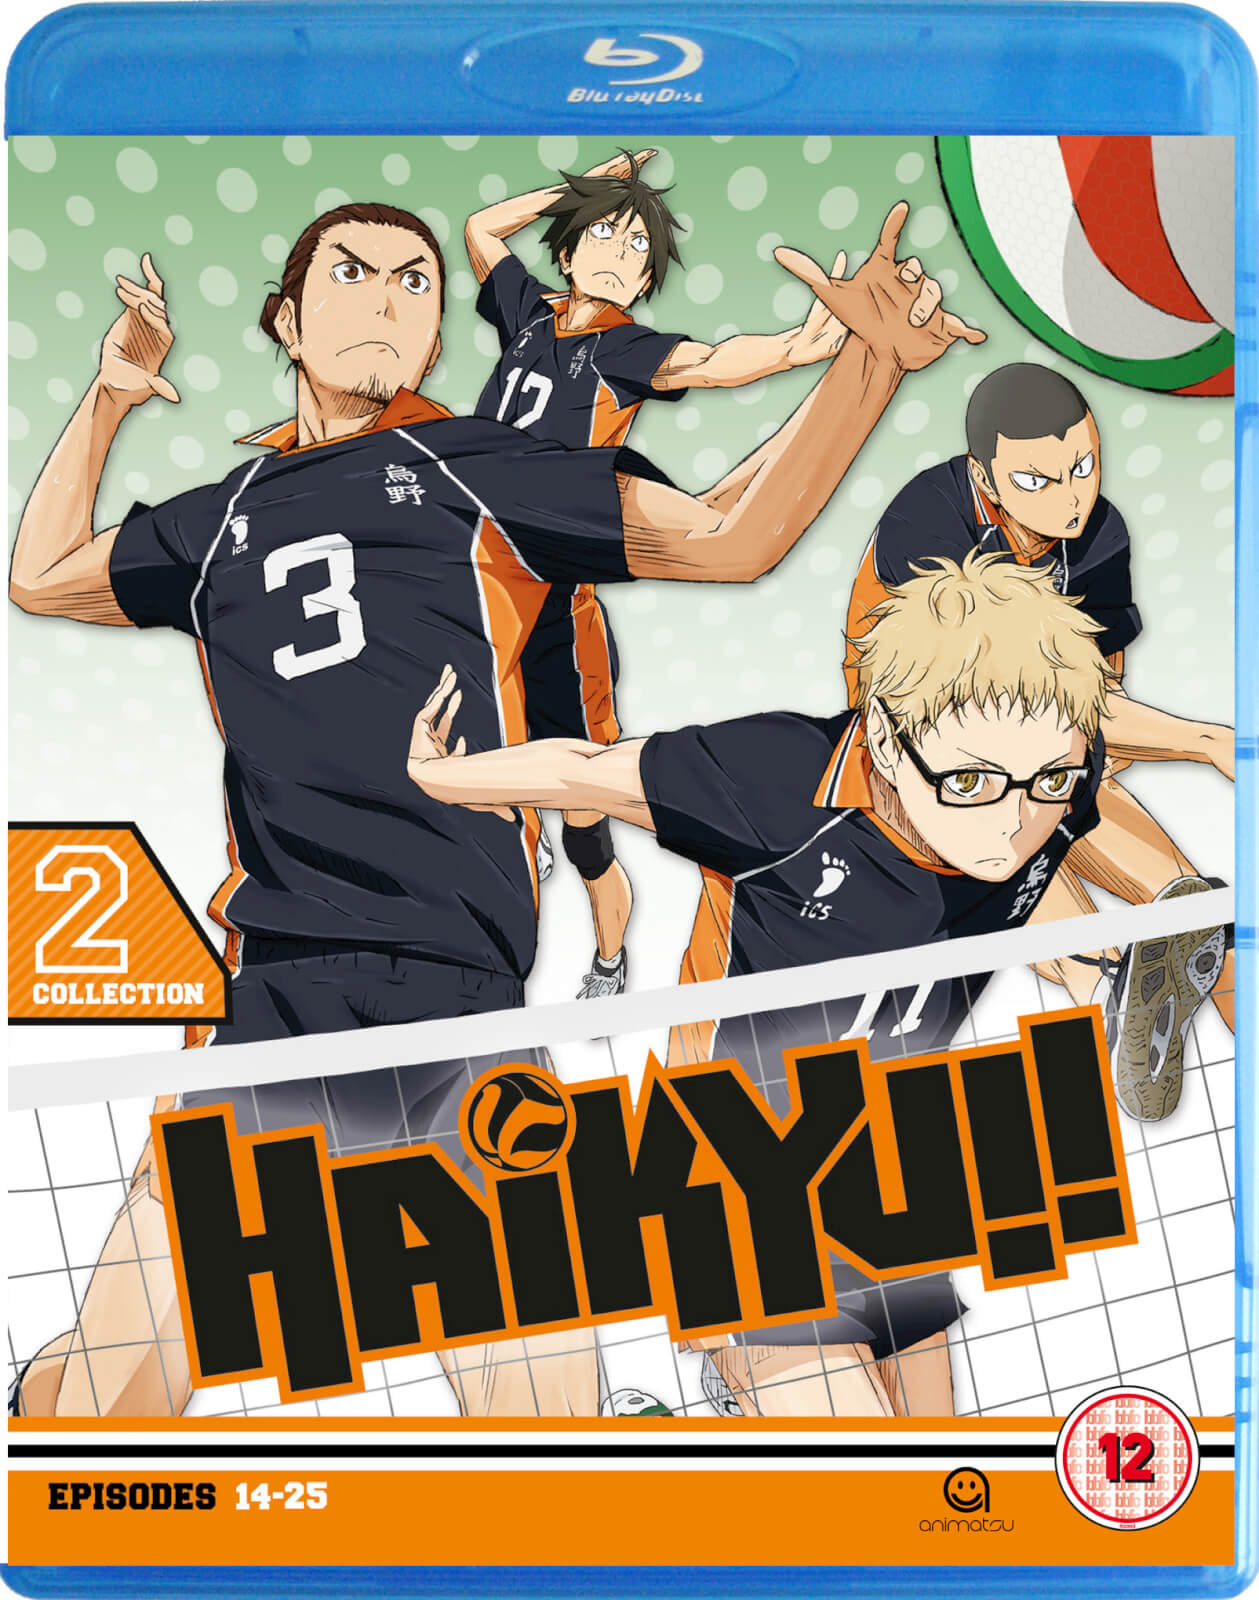 Haikyu!! Season 1: Collection 2